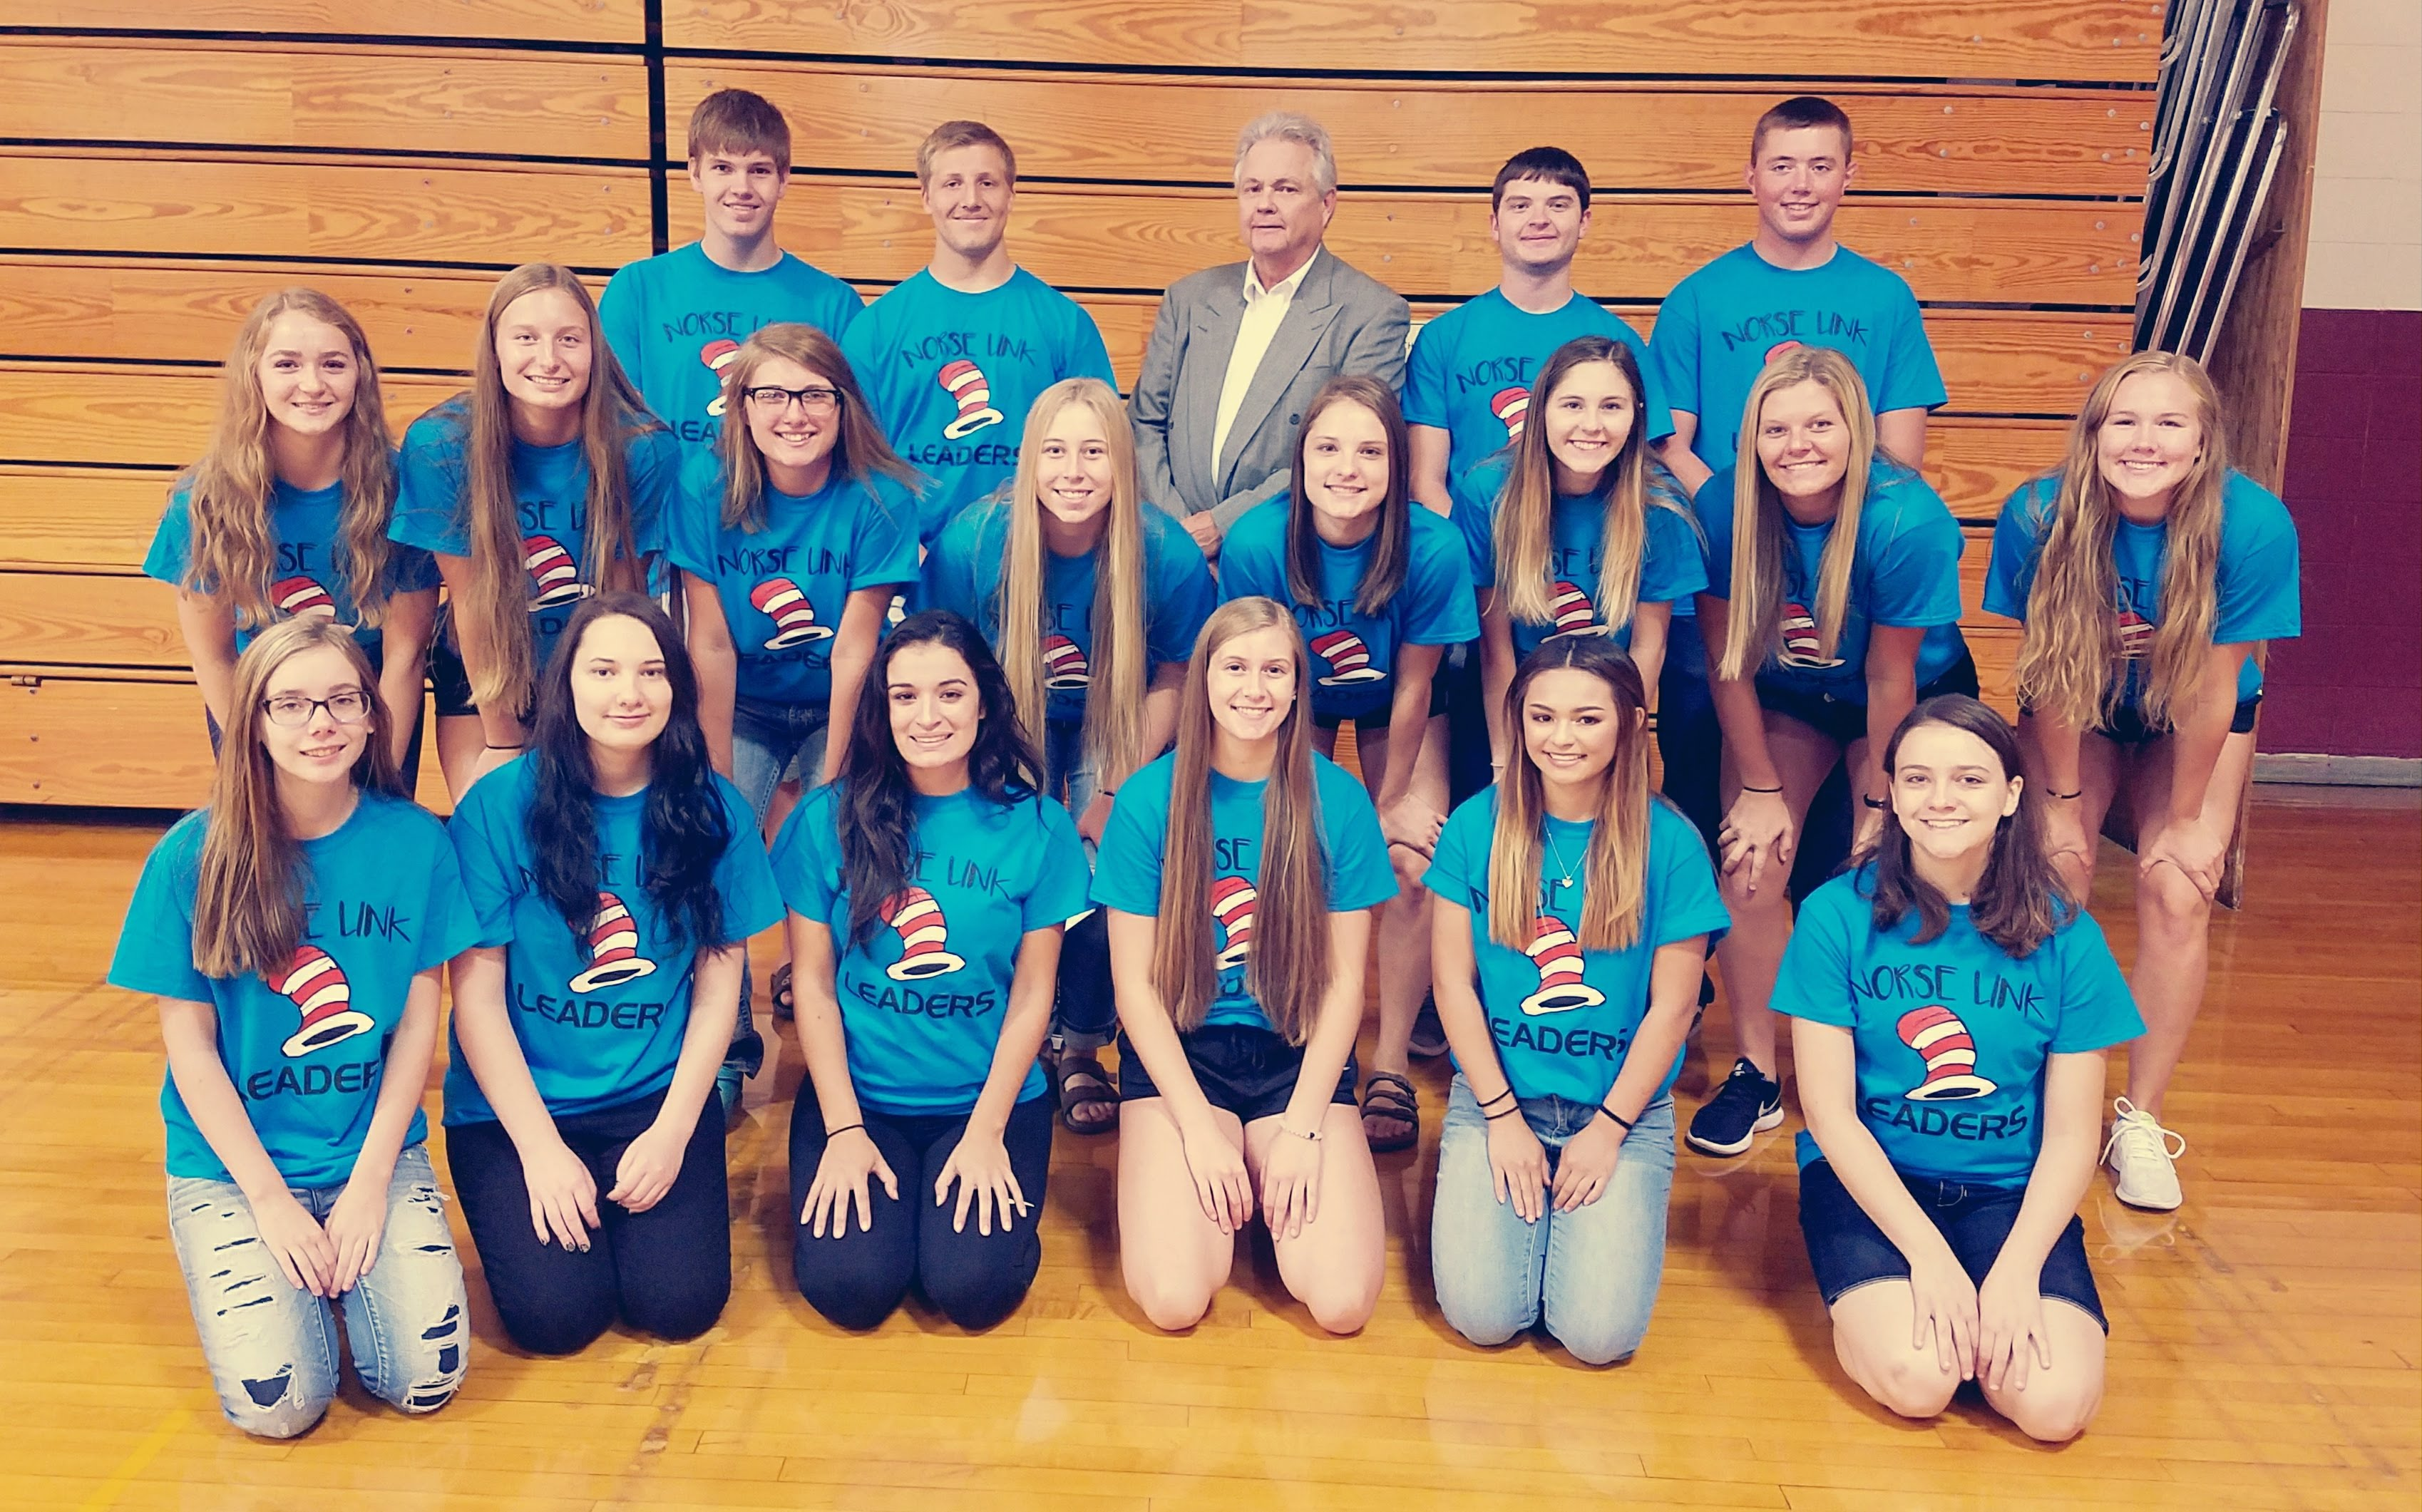 Our Norse Link leaders and incoming freshmen had the privilege of listening to Tom Thibodeau.  It's going to be a great school year thanks to his positive words!